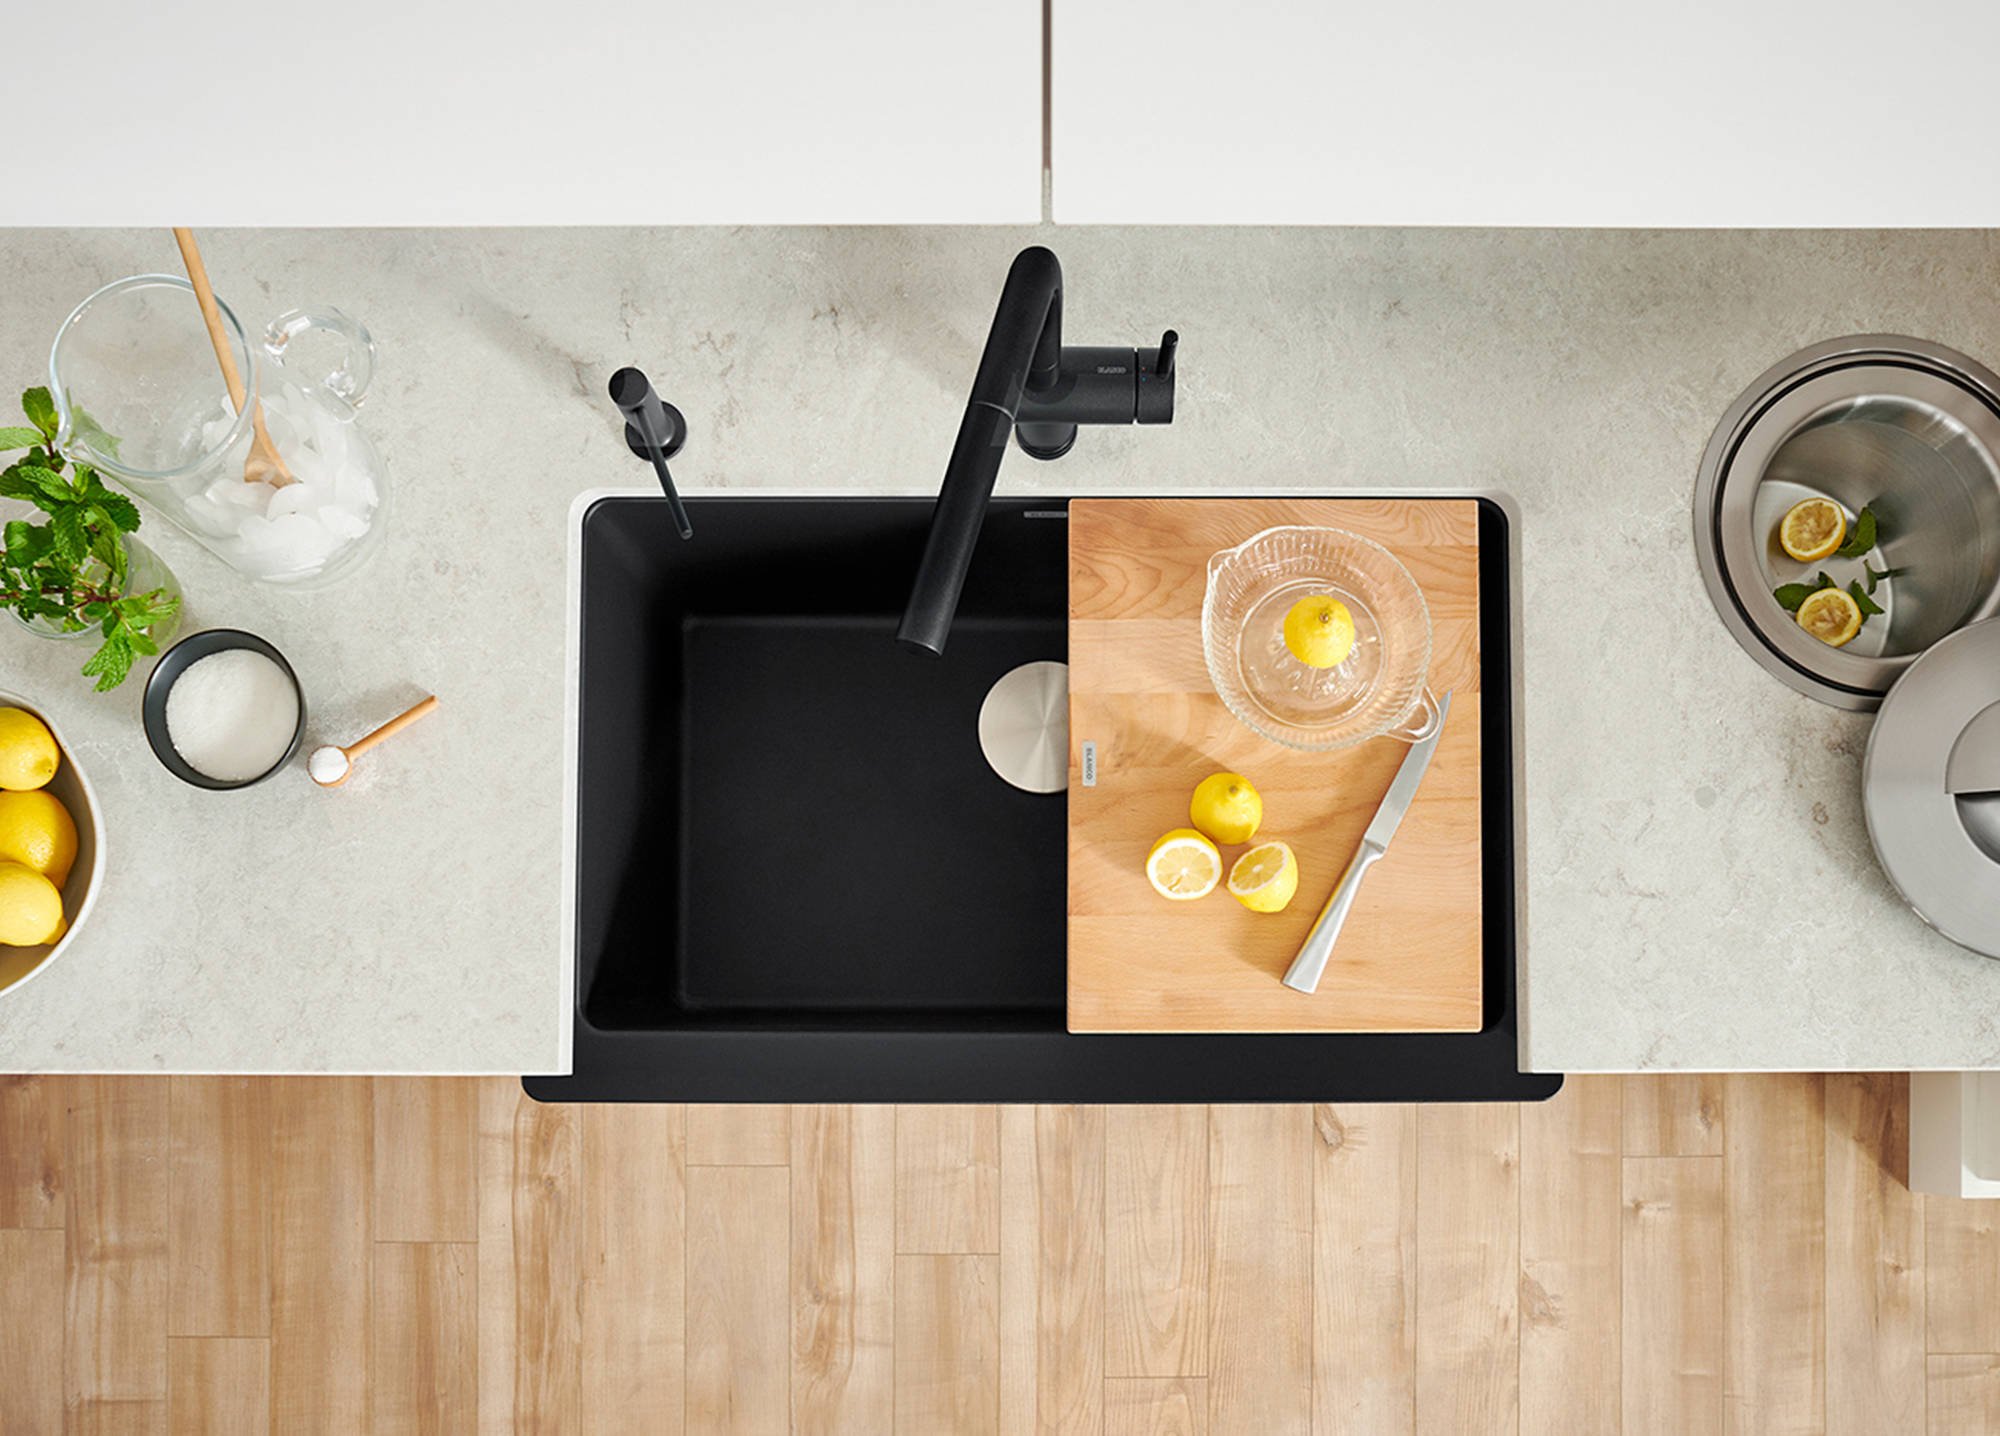 With options like BLANCO's Beech cutting board and functional stainless-steel grids designed to perfectly fit the VINTERA kitchen sink, you can adapt your kitchen sink to your unique cooking style.